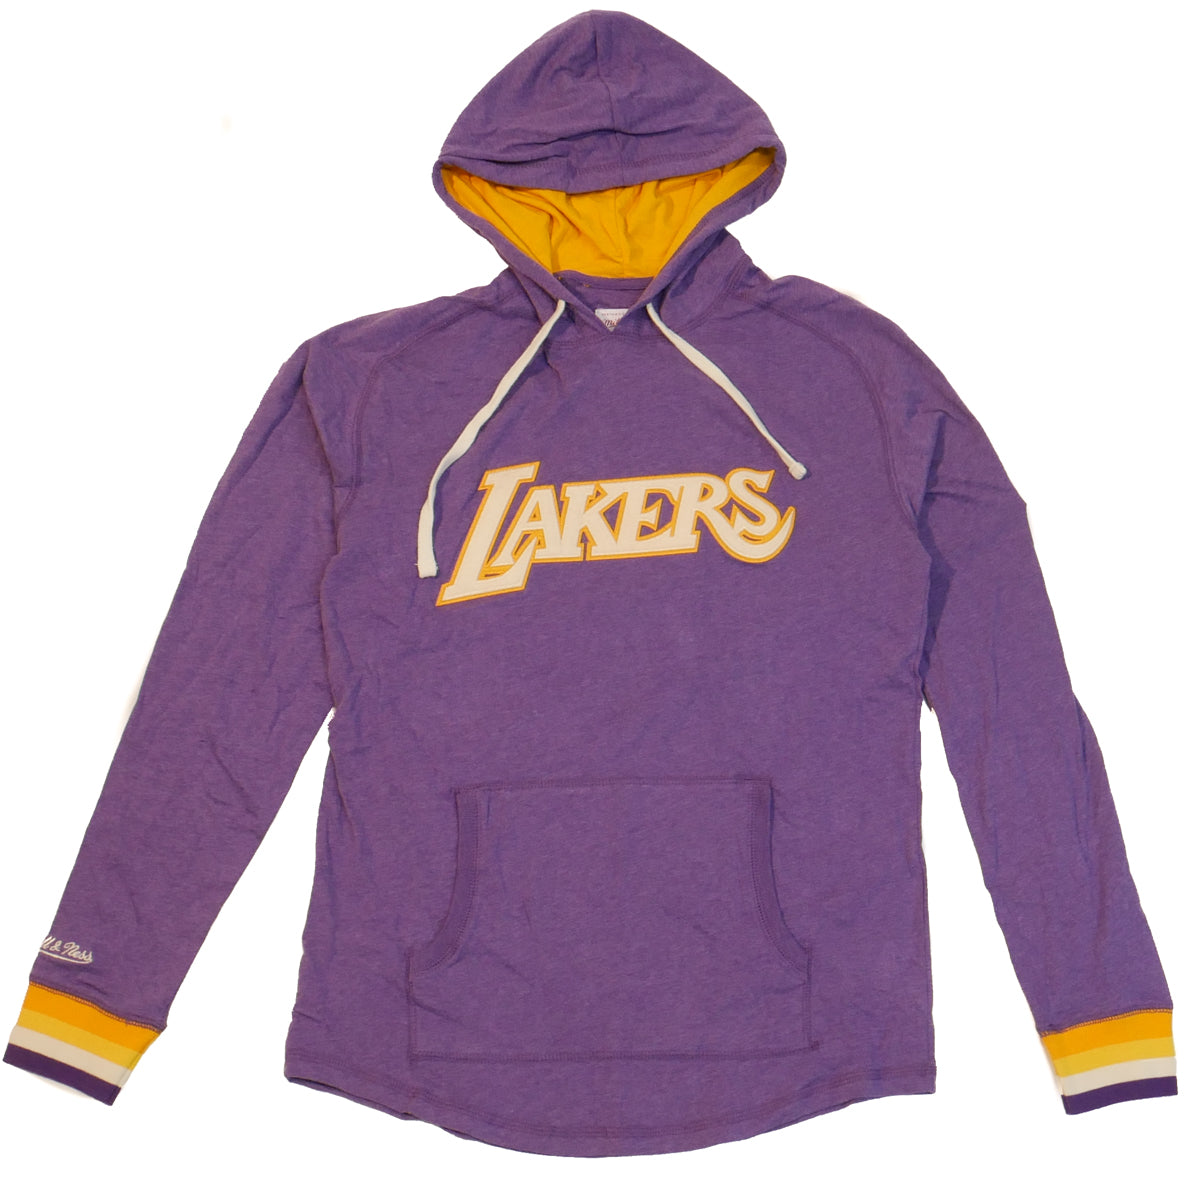 buy online bf4b0 f0e08 Mitchell & Ness NBA Lightweight Los Angeles Lakers Hoodie